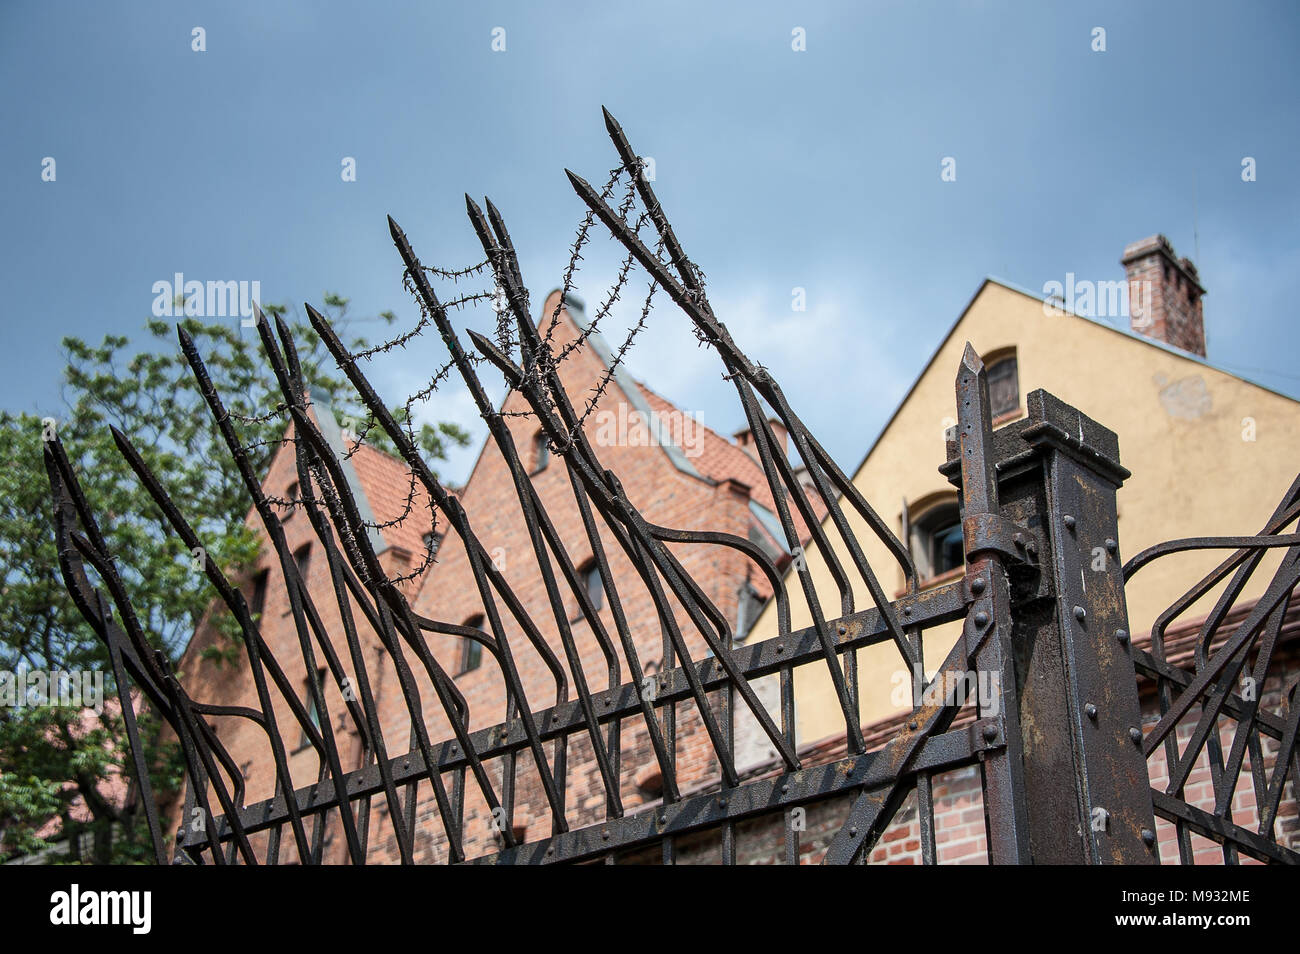 Security measures around a  detention centre complex in Torun, Poland. Barbed wire, high fence, jagged spikes  against blue sky background - Stock Image